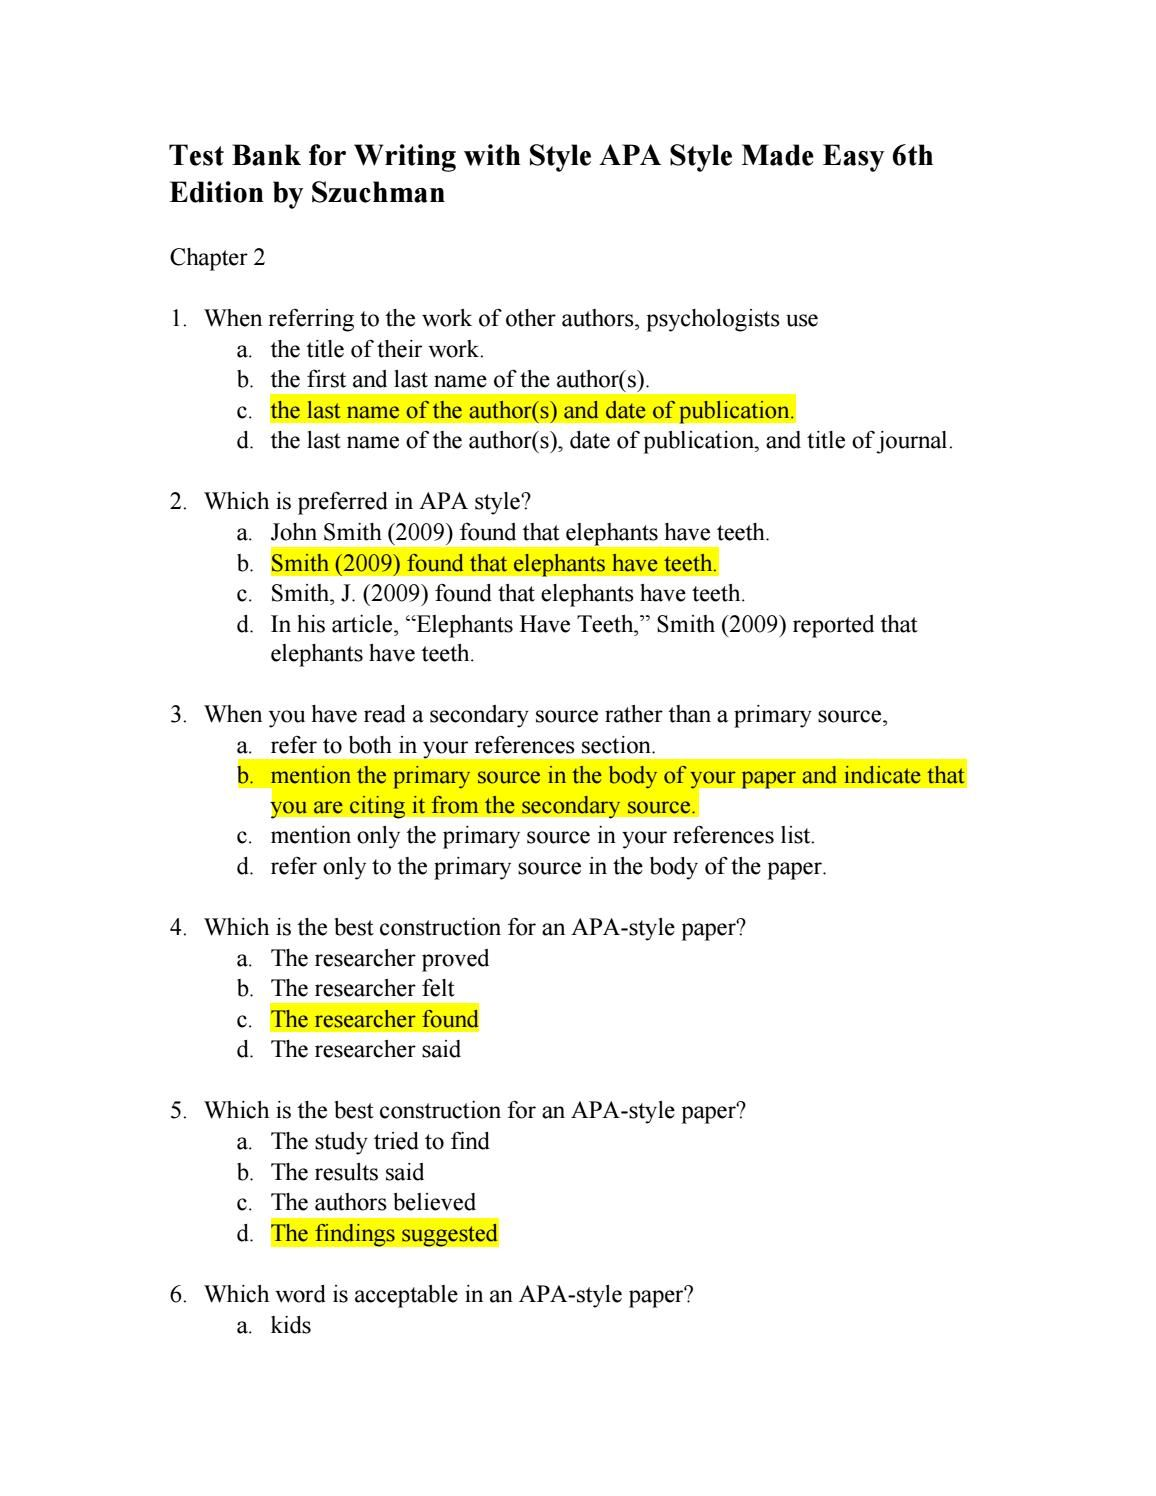 Pin Op Findtestbank How To Cite A Book Chapter Apa 7th Edition